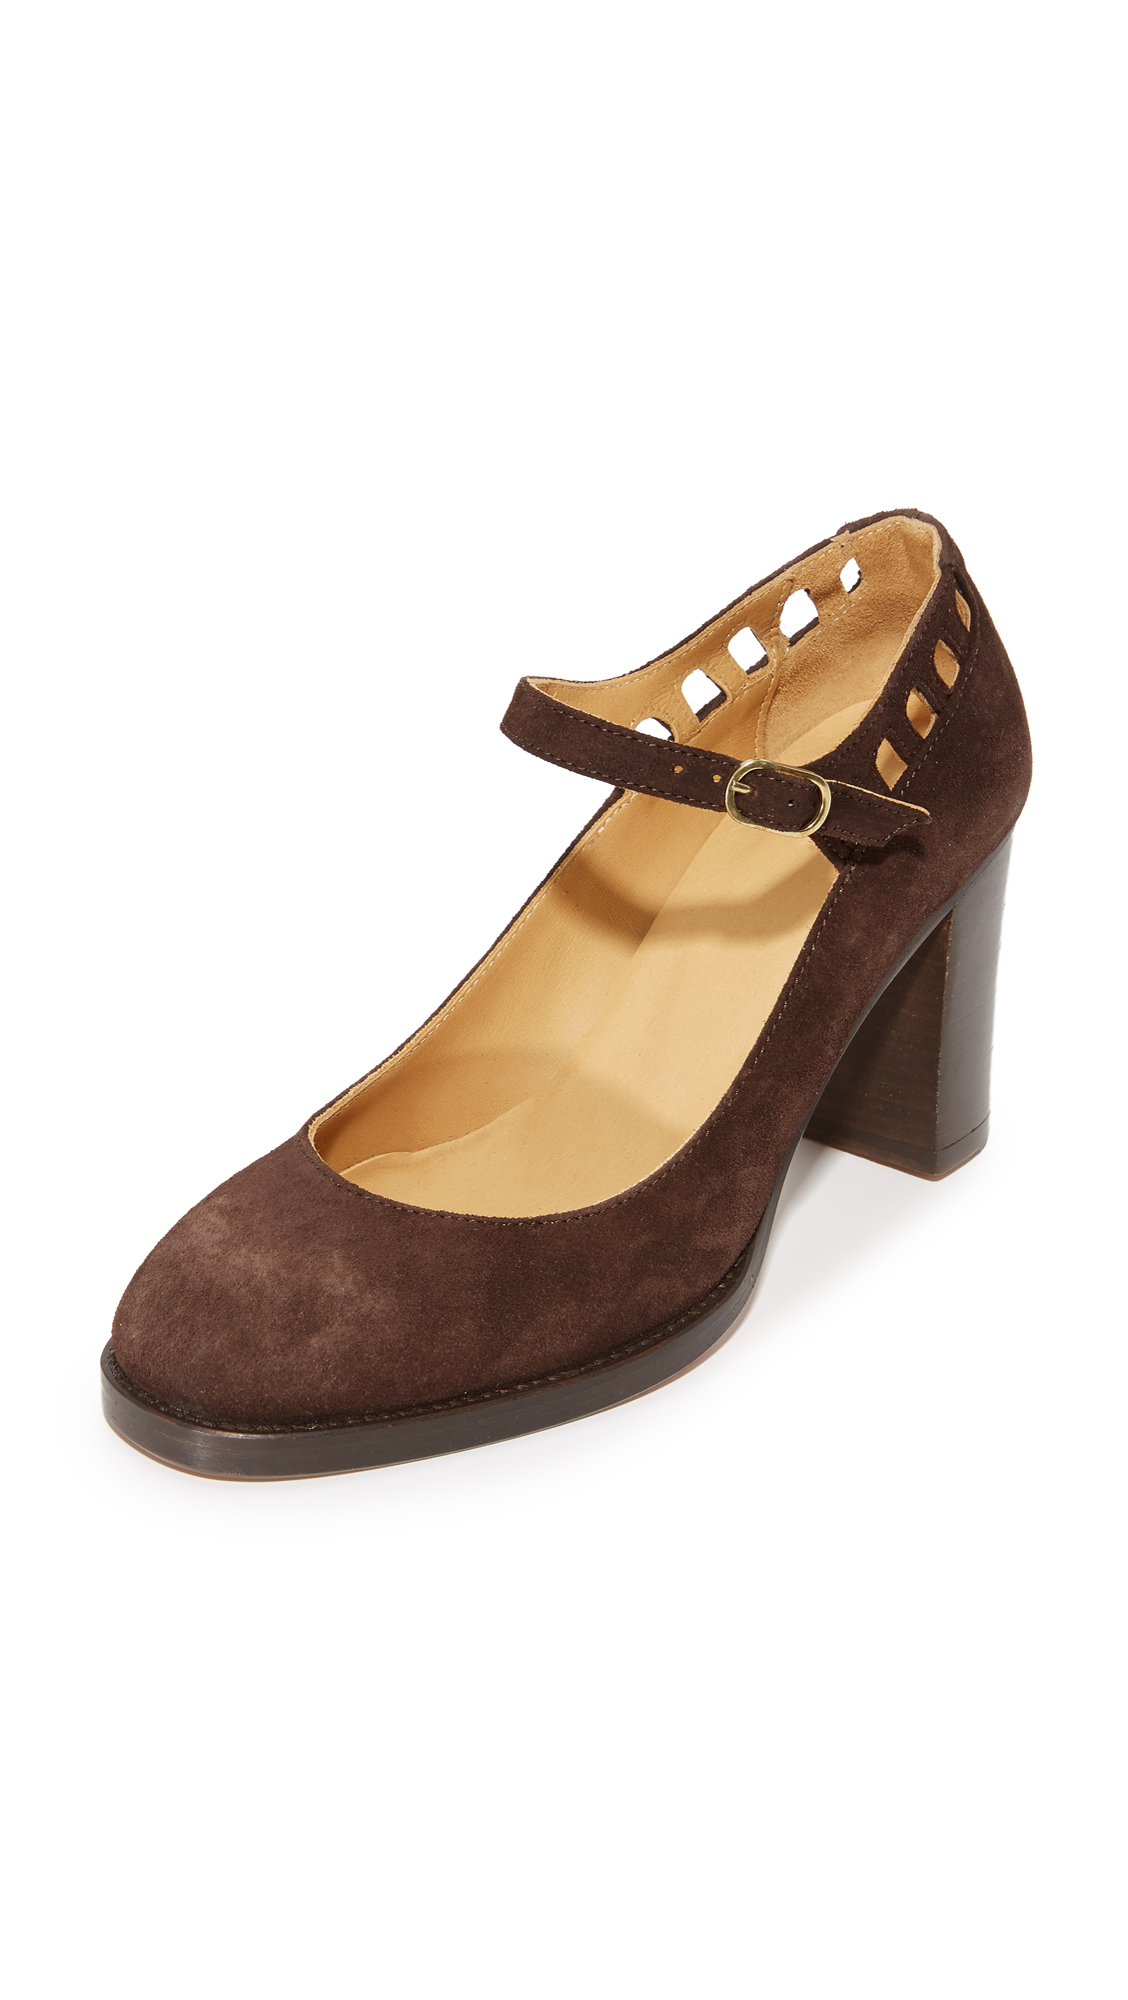 A.P.C. Chaussures Heloise Mary Jane Pumps - Marron Fonce at Shopbop